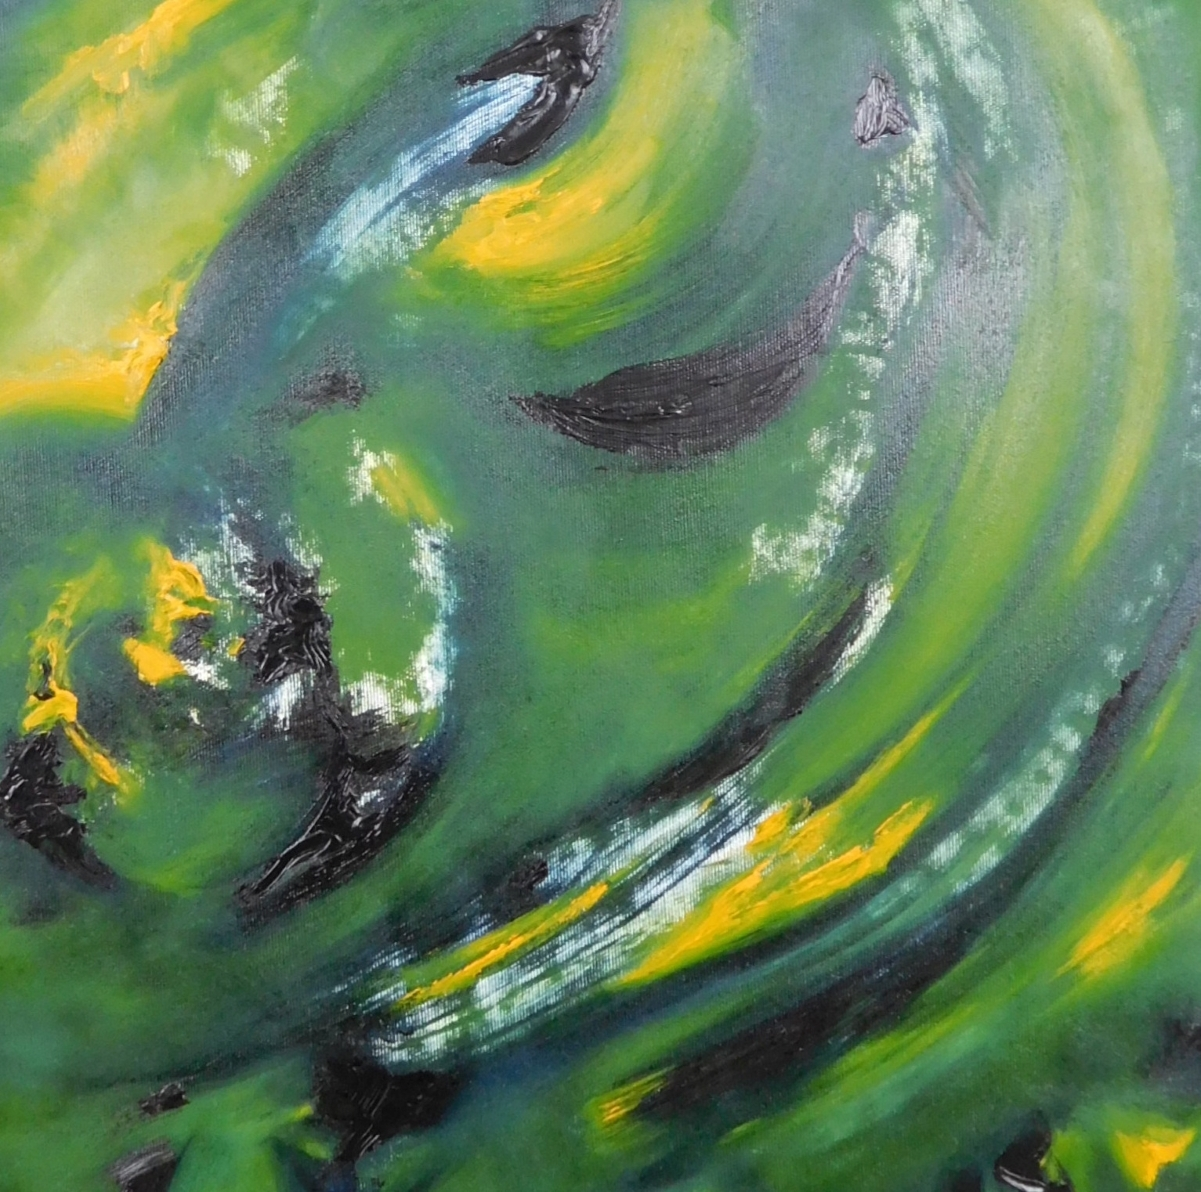 """Dipinto astratto moderno """"Untitled in green"""" 55x75 cm"""